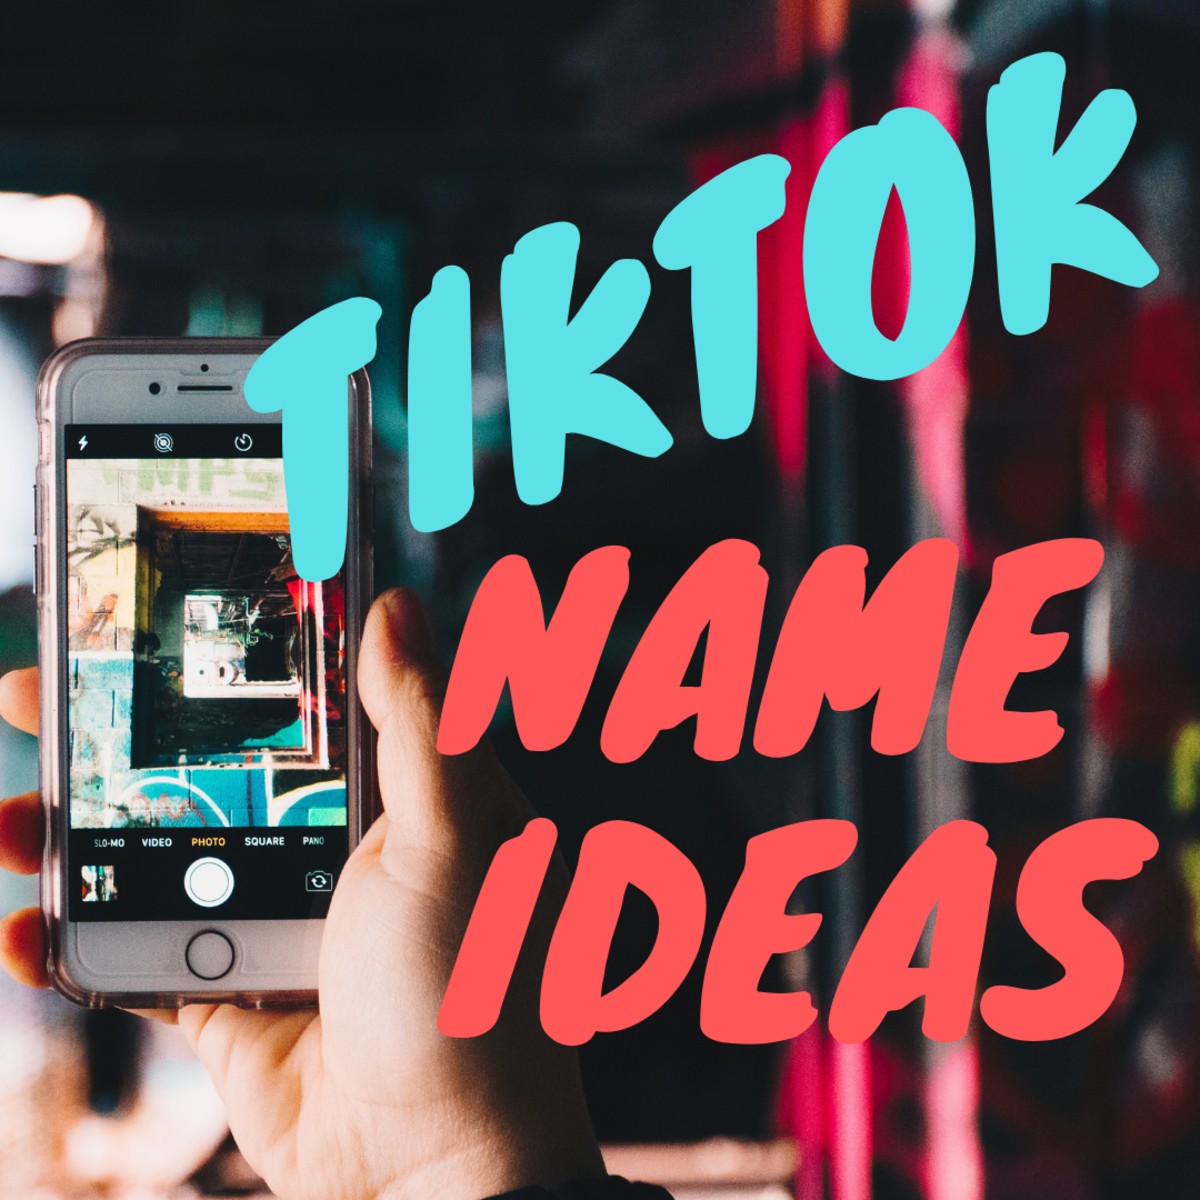 200+ TikTok Username Ideas and Name Generator | TurboFuture